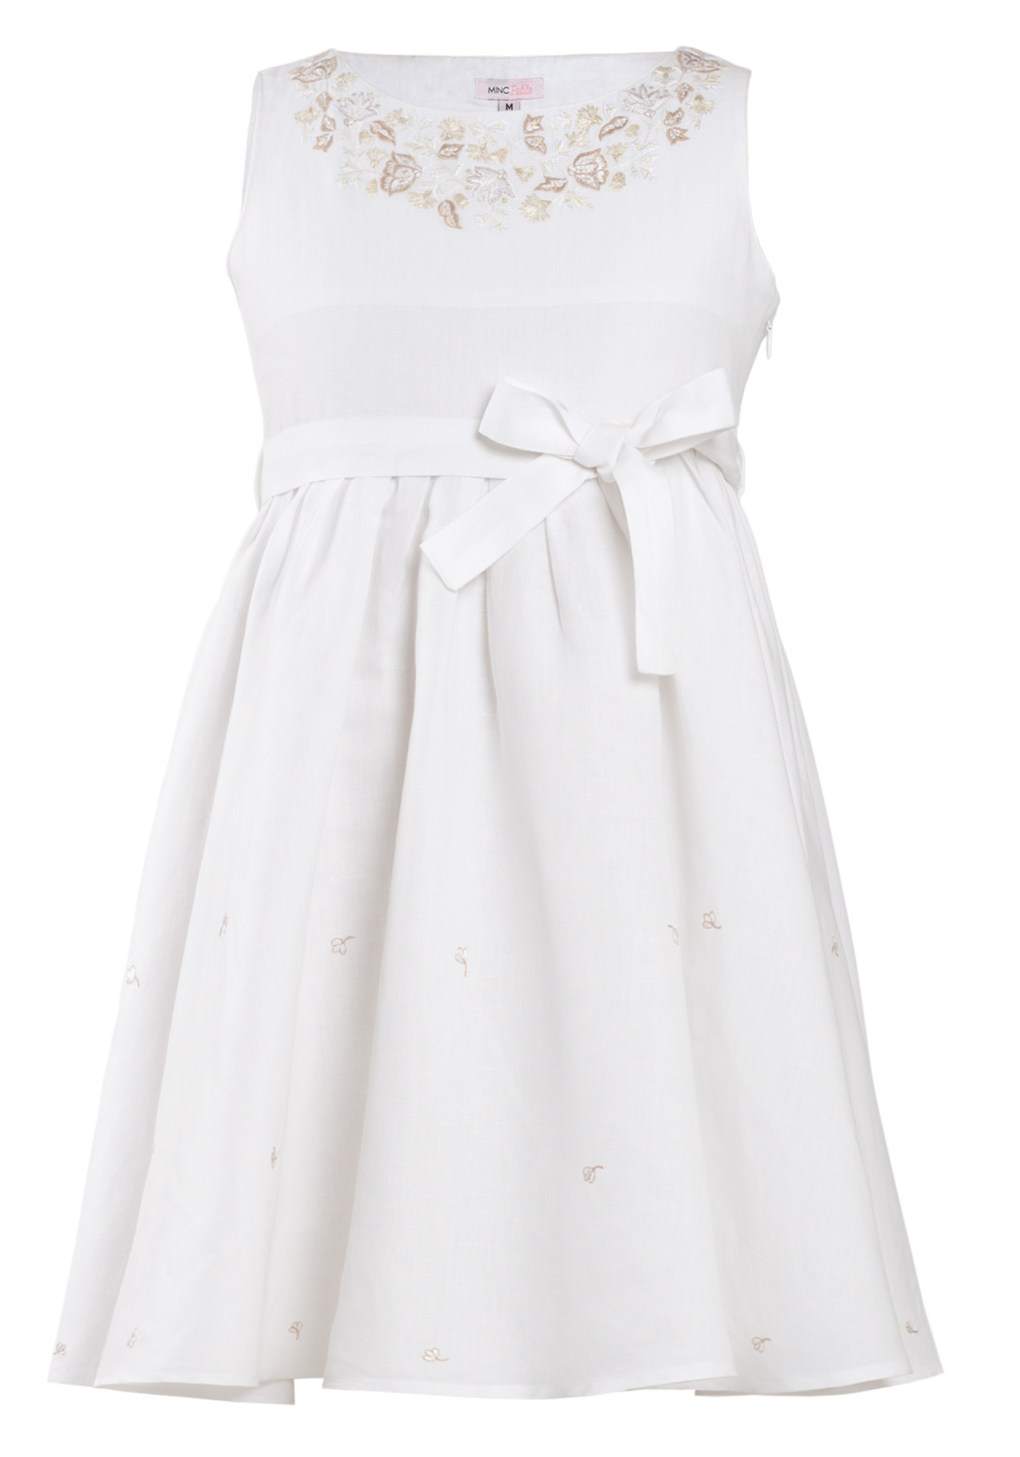 MINC Petite Girls Embroidered Short Dress in Angelic White Linen